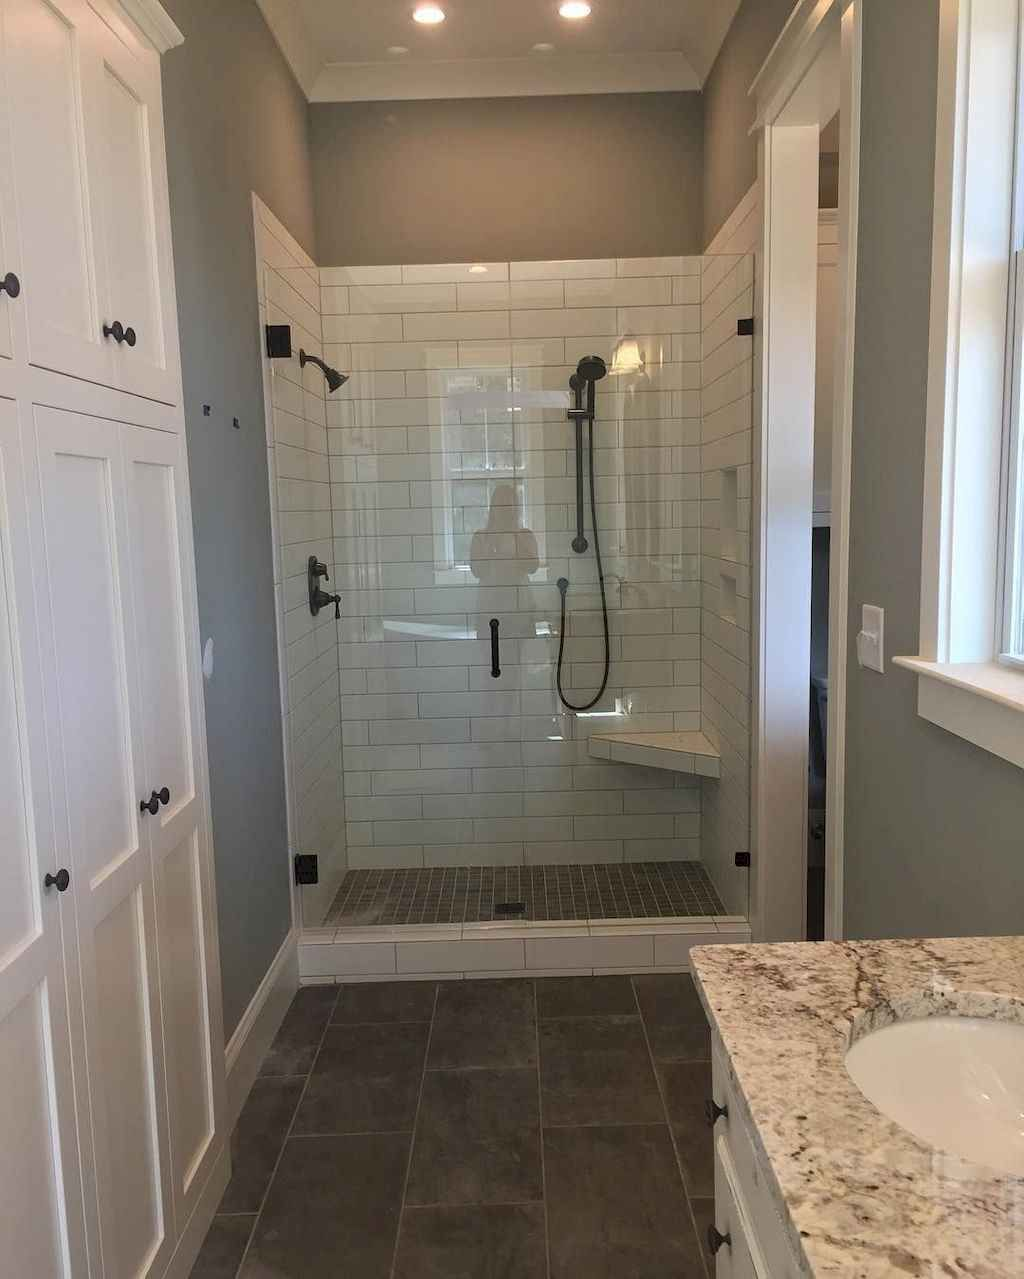 28 beautiful farmhouse master bathroom remodel ideas on beautiful farmhouse bathroom shower decor ideas and remodel an extraordinary design id=26143